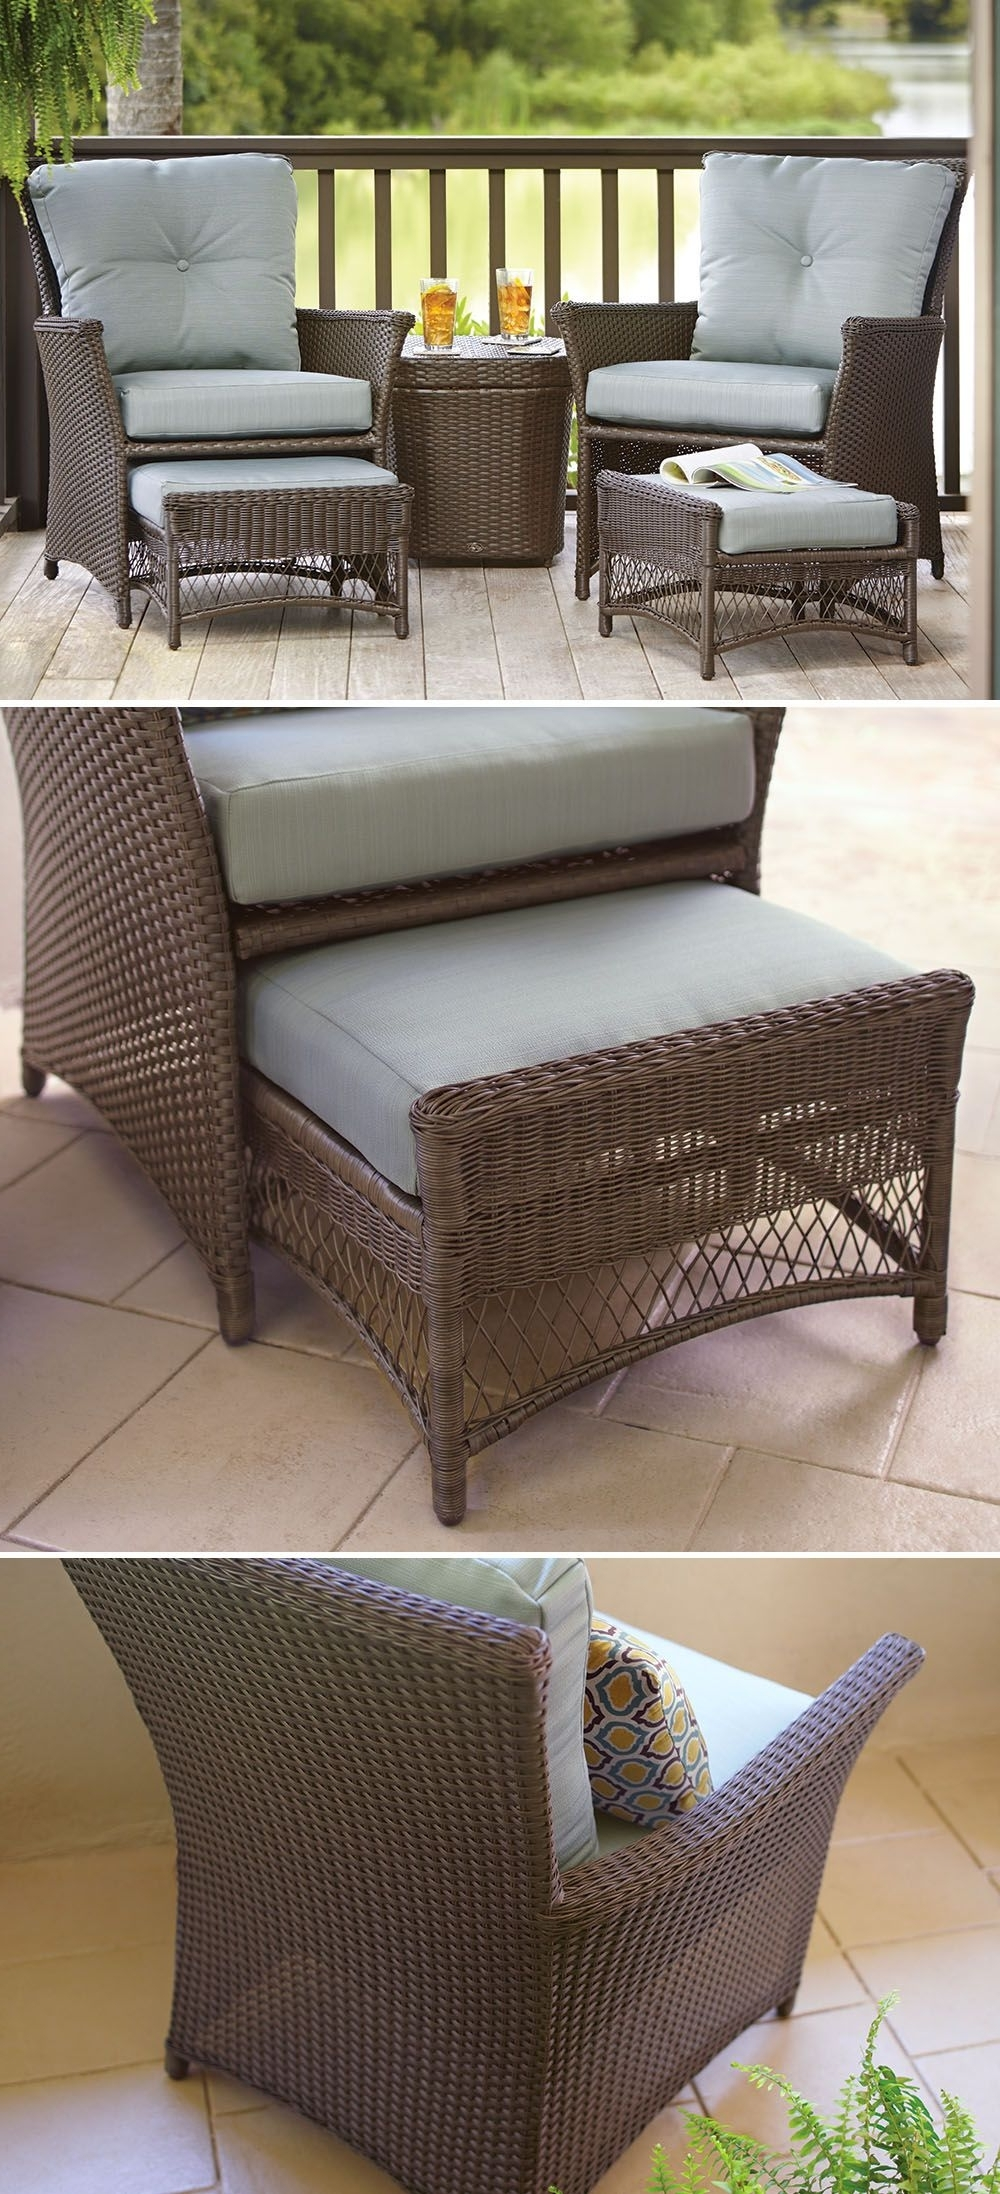 This Affordable Patio Set Is Just The Right Size For Your Small With Regard To Latest Patio Umbrellas For Small Spaces (View 18 of 20)